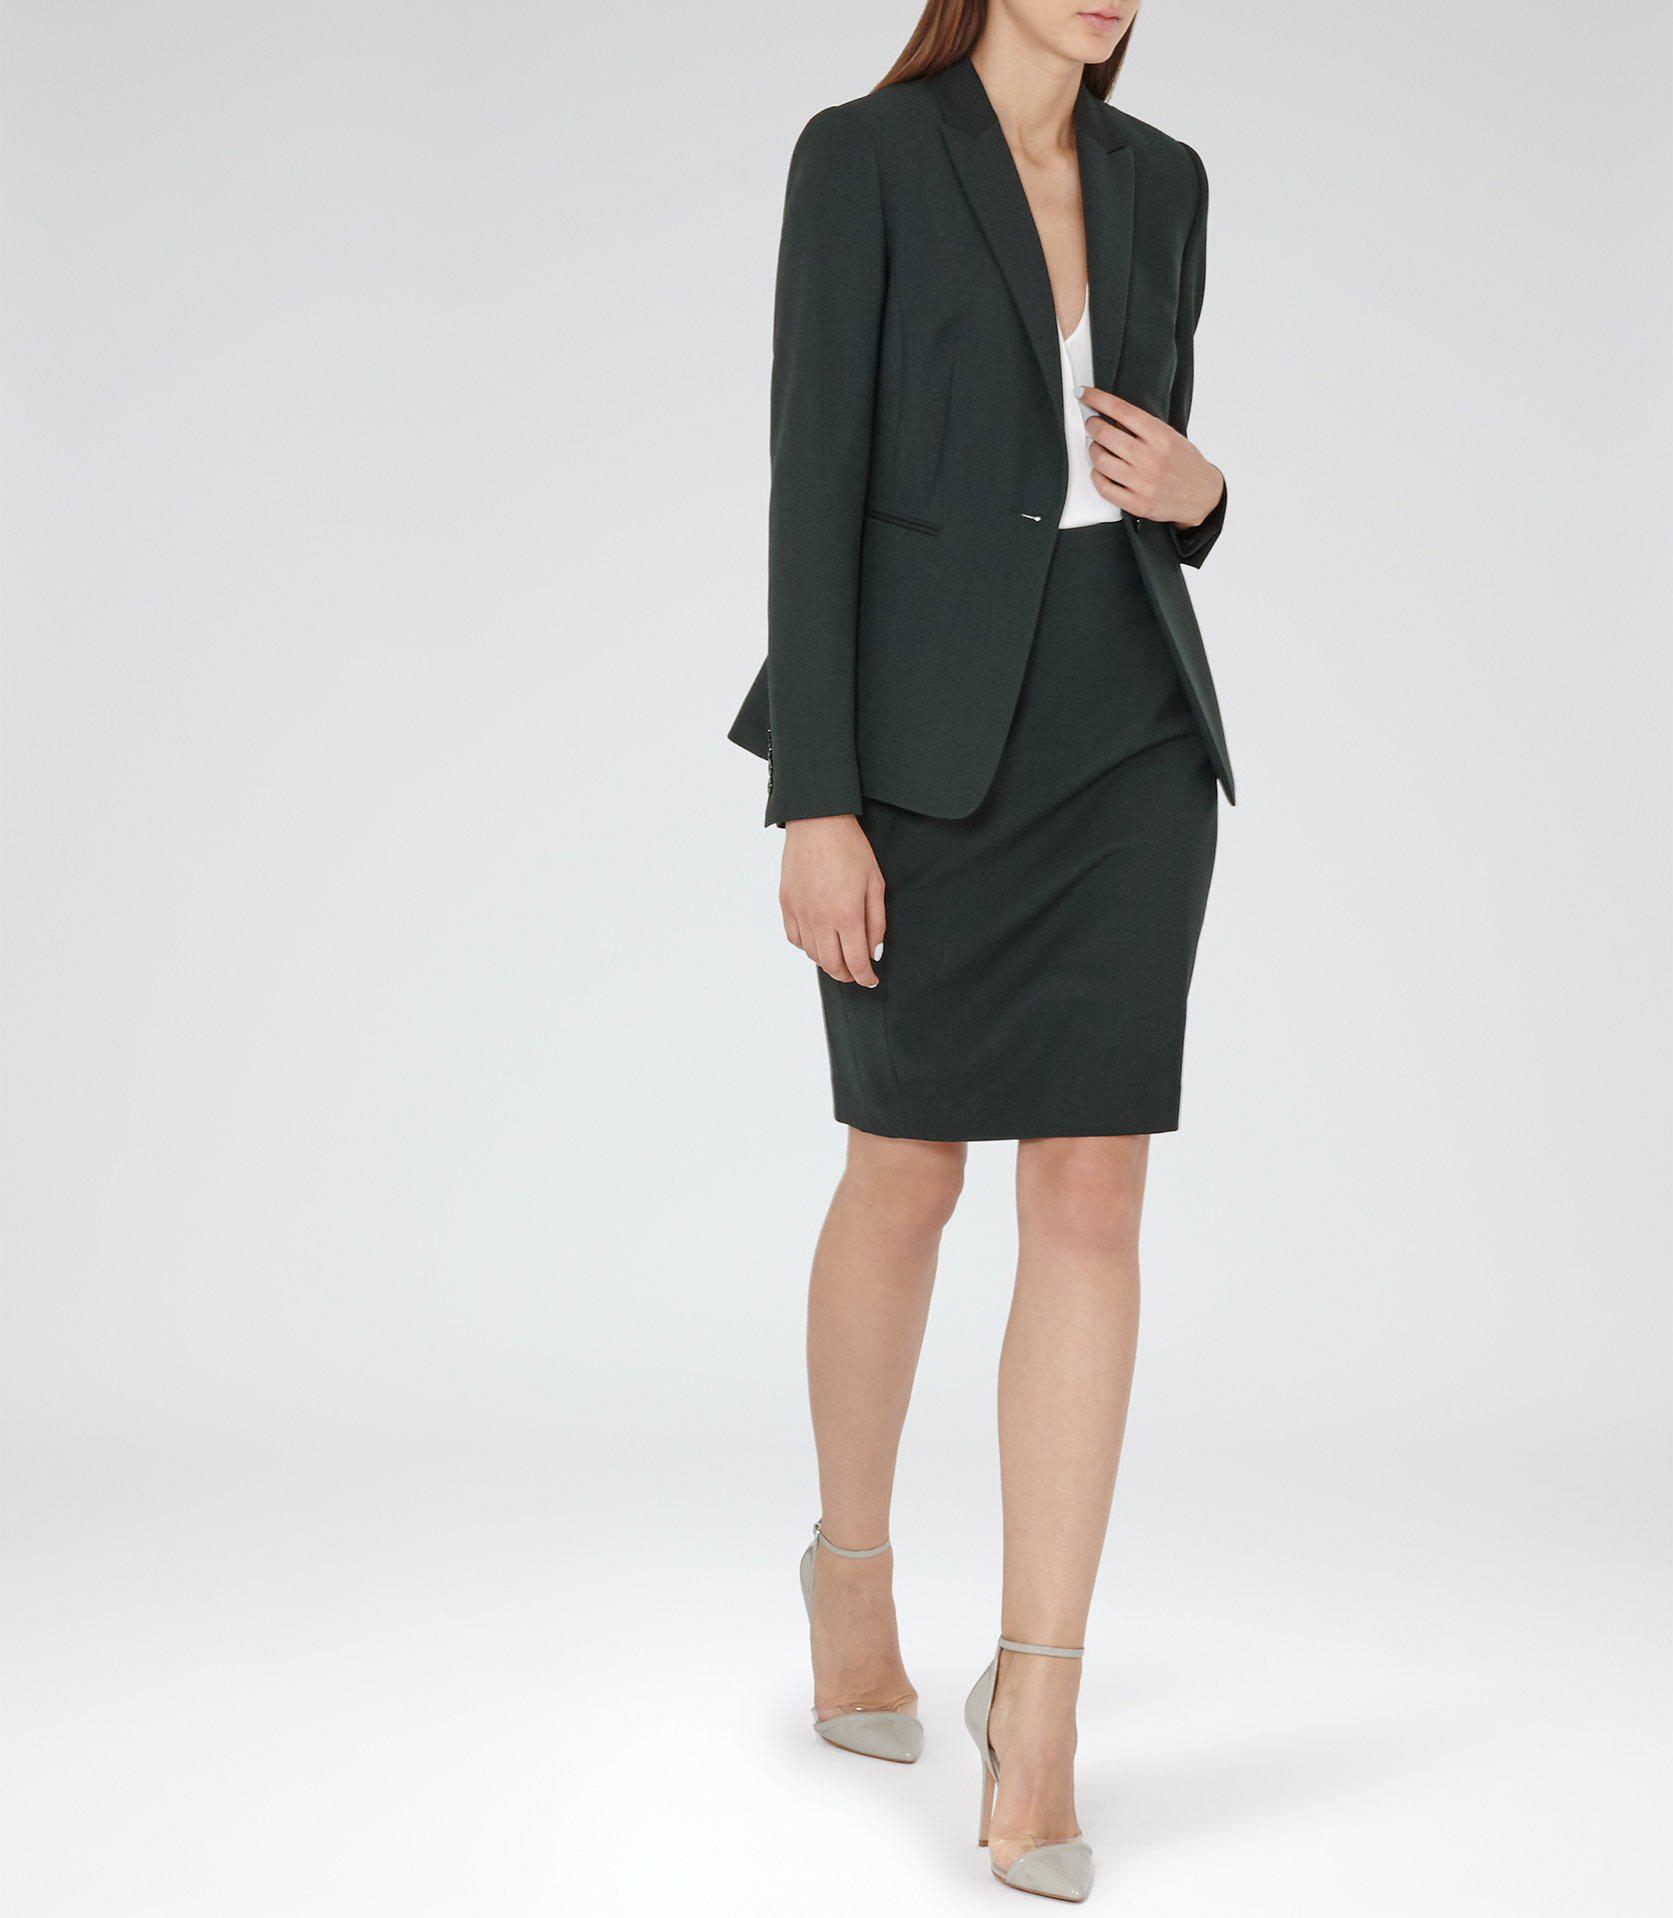 Reiss Synthetic Pinetta Skirt in Olive (Natural)